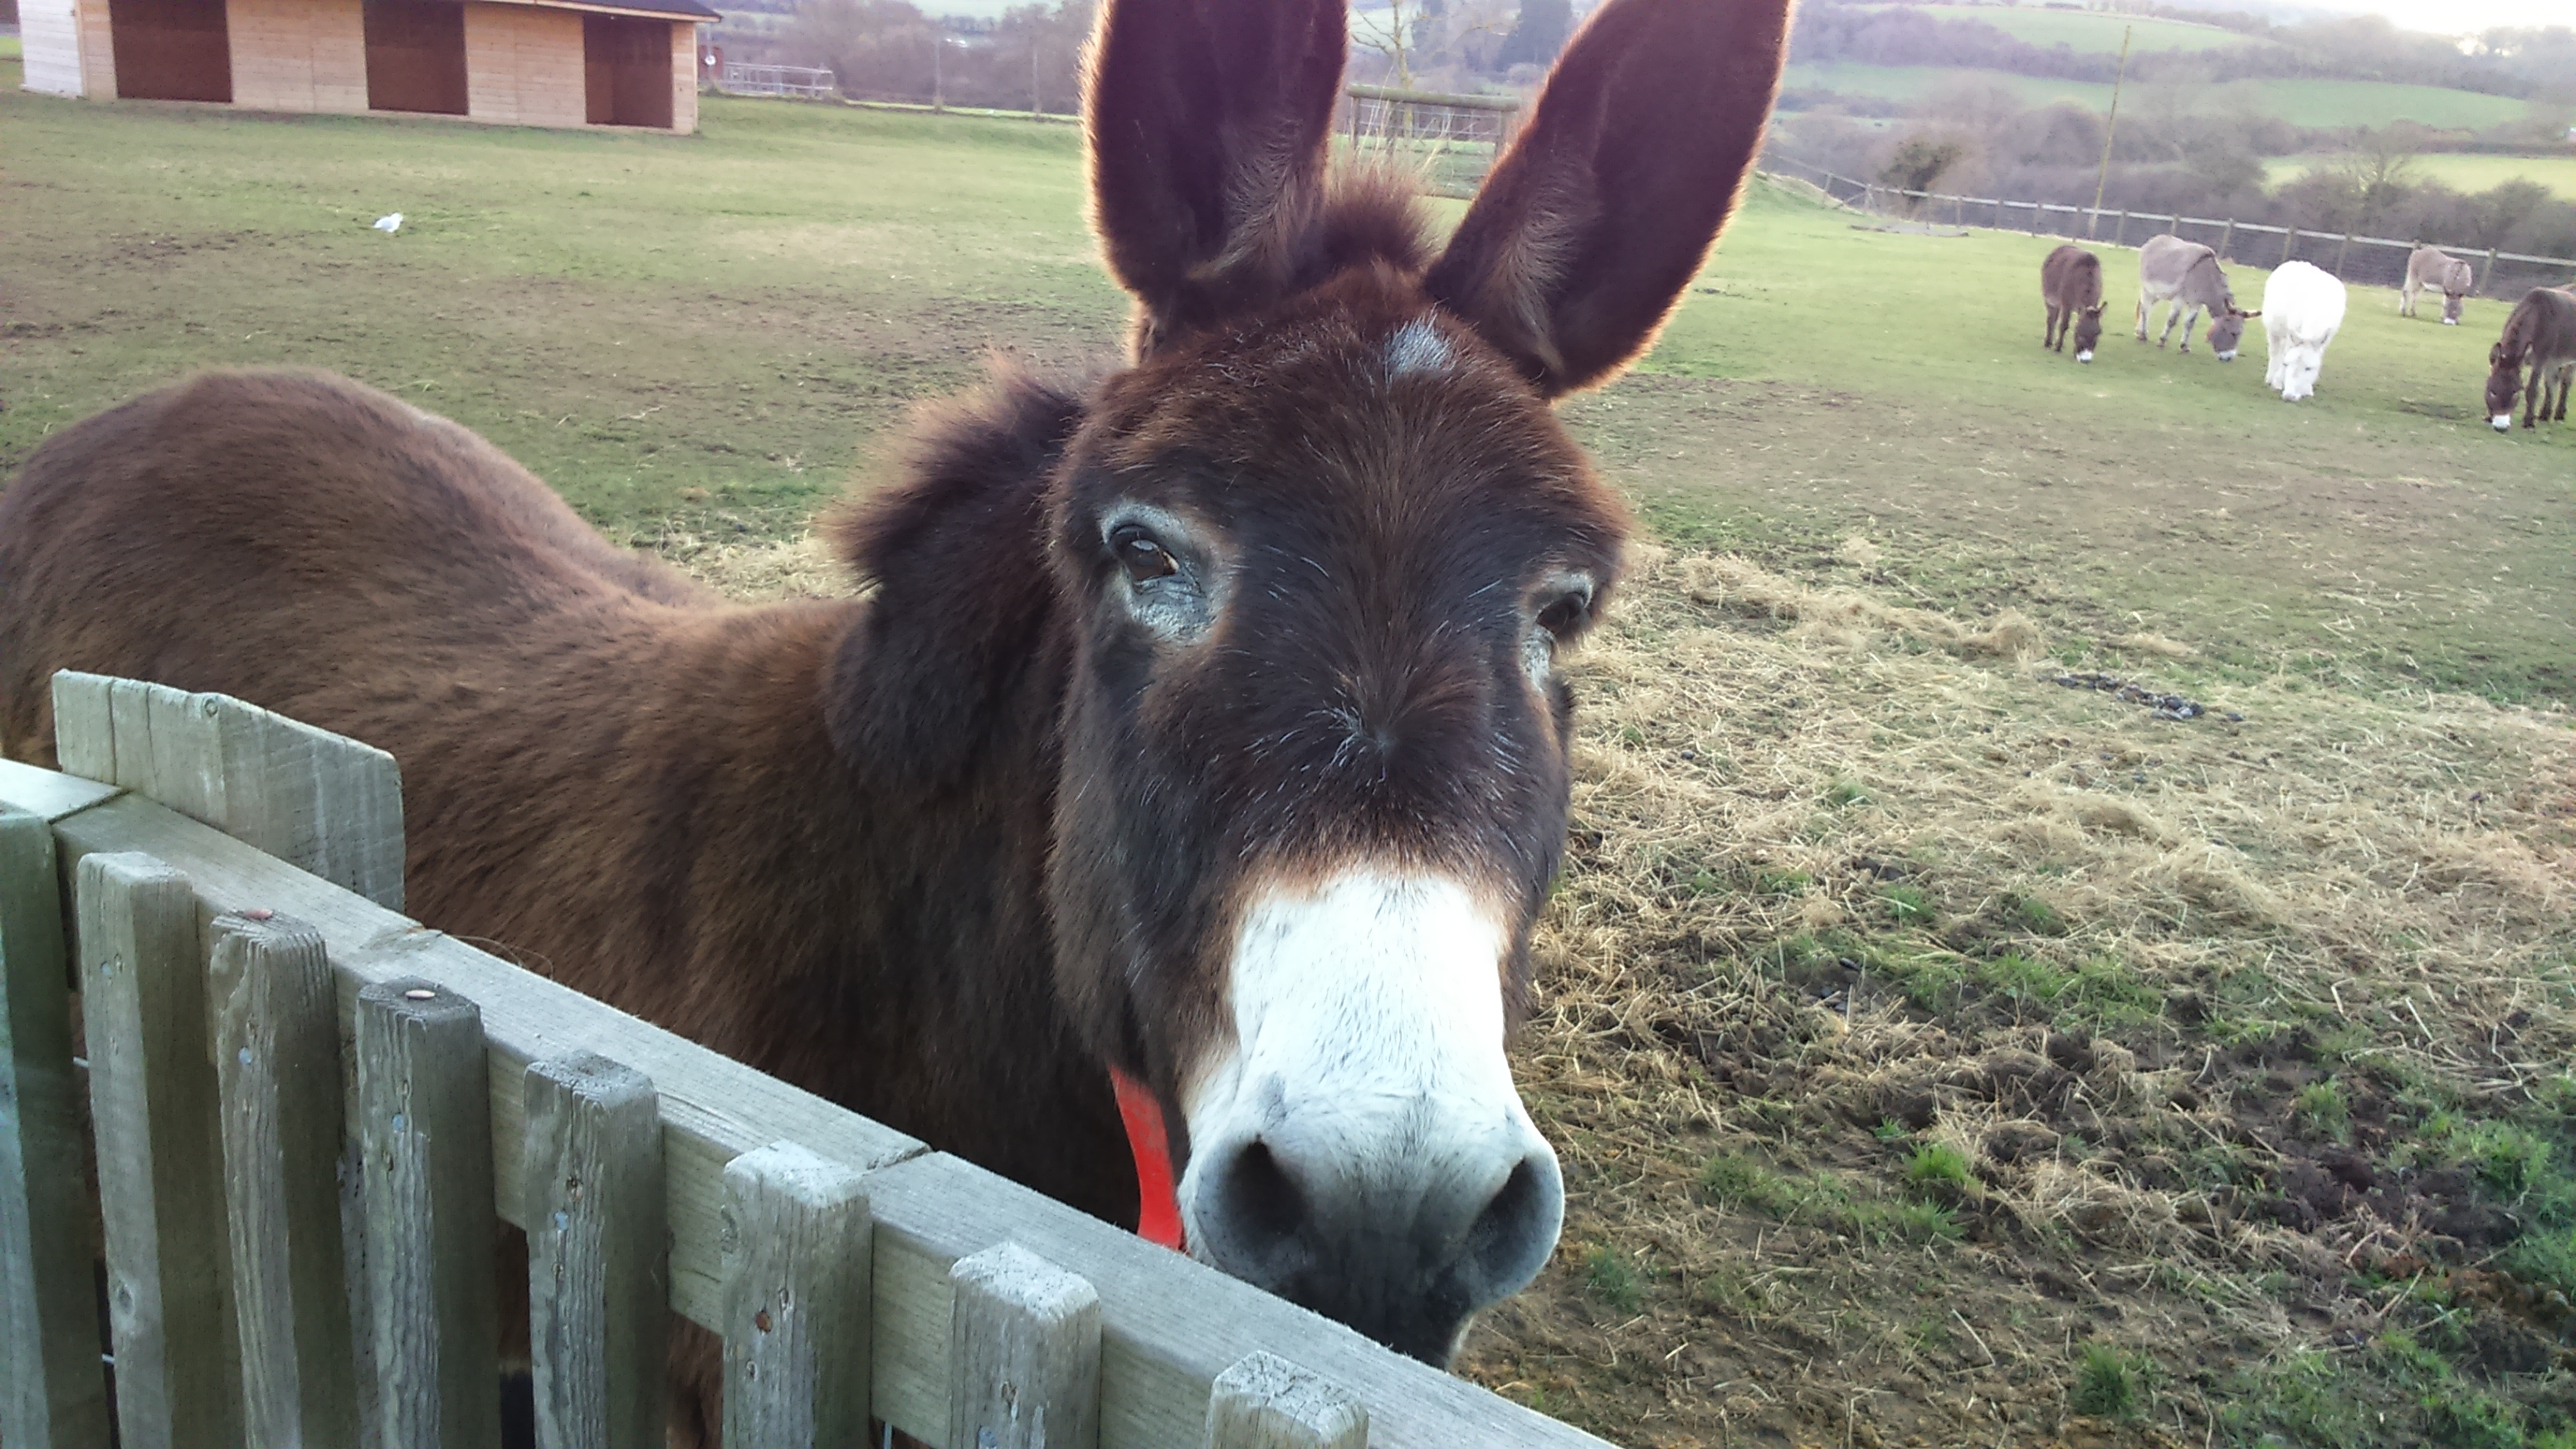 Busby the Donkey at the Isle of Wight Donkey Sanctuary